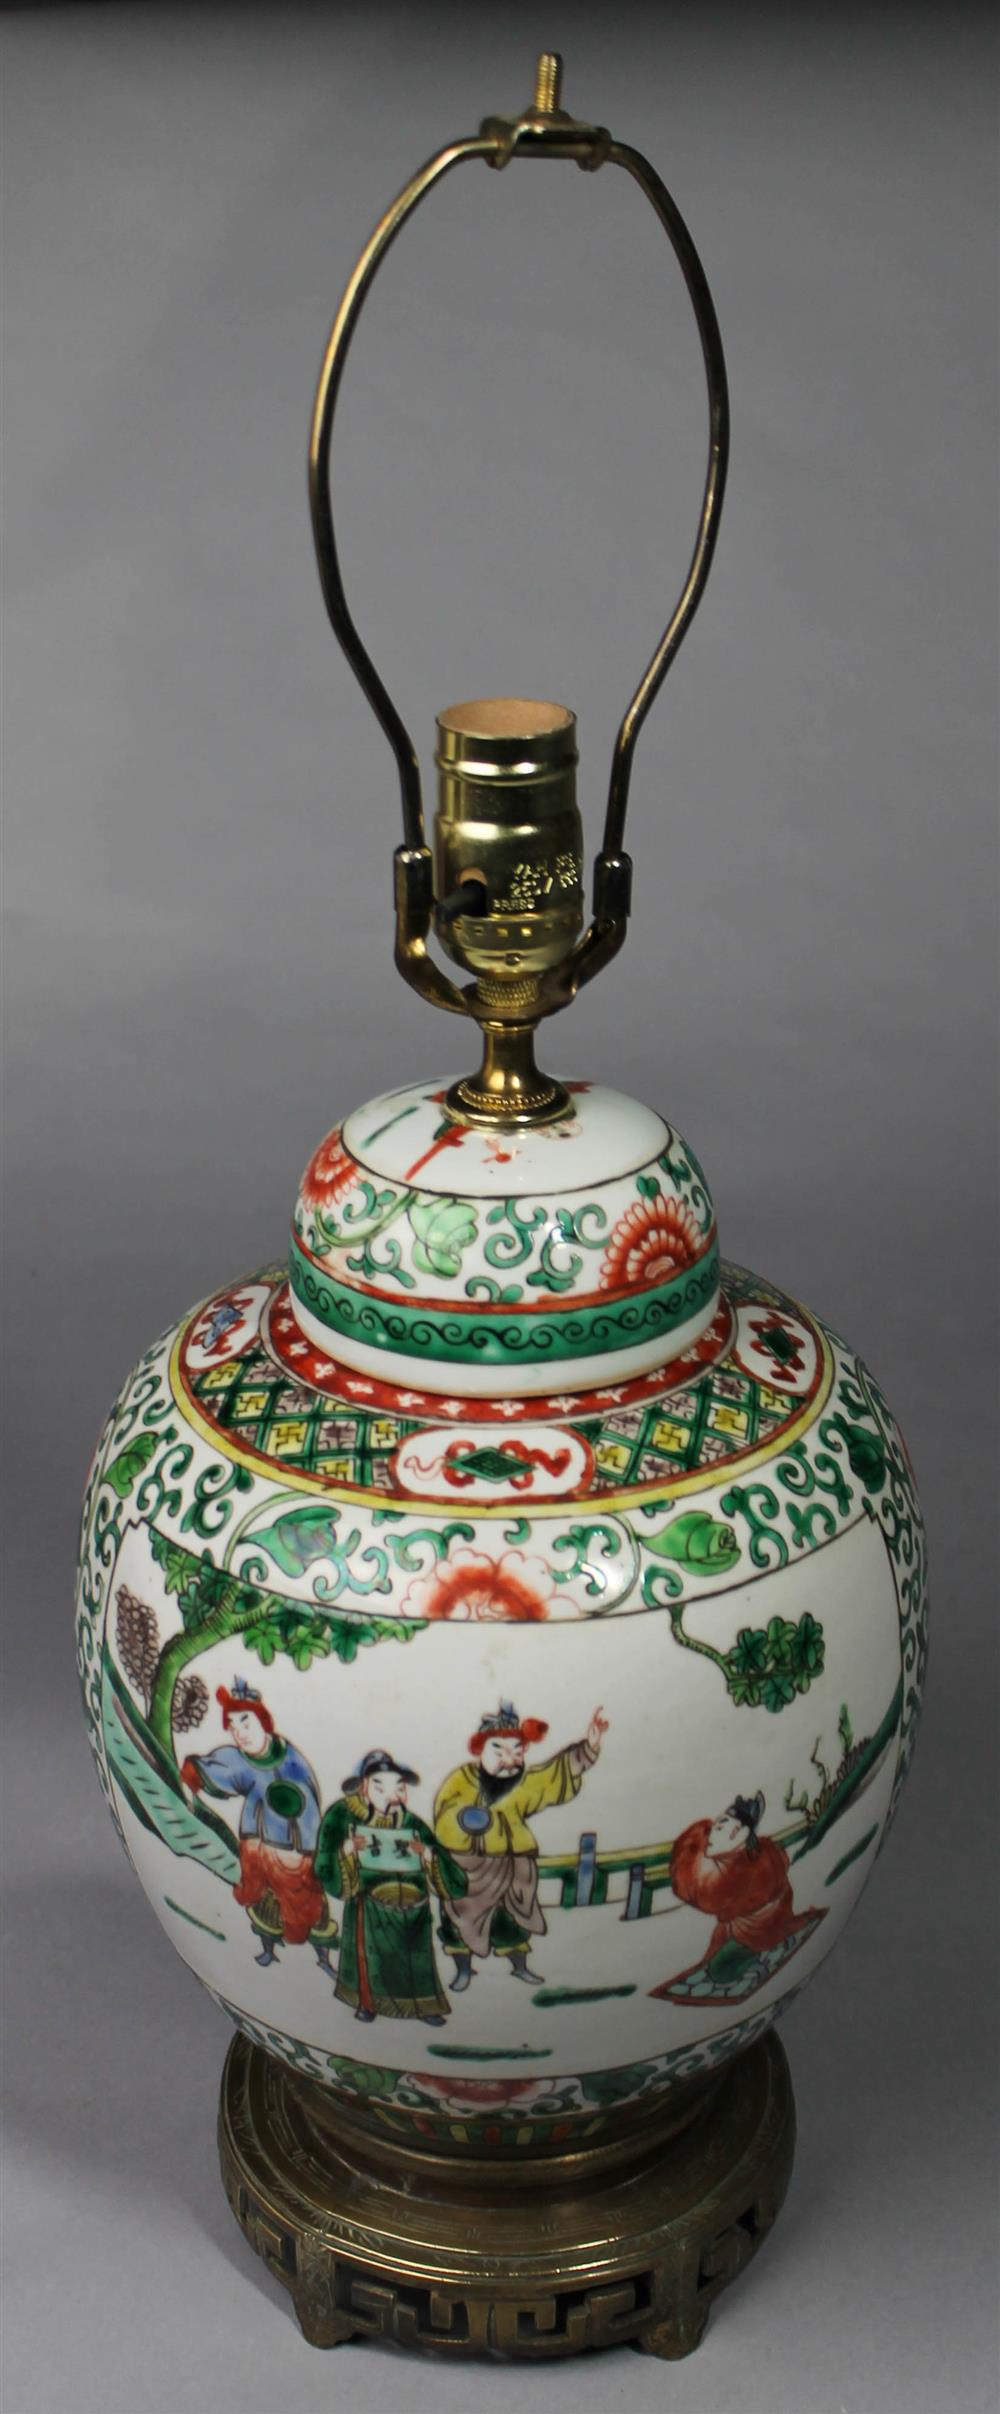 CHINESE FAMILLE VERTE JAR AND COVER of globular